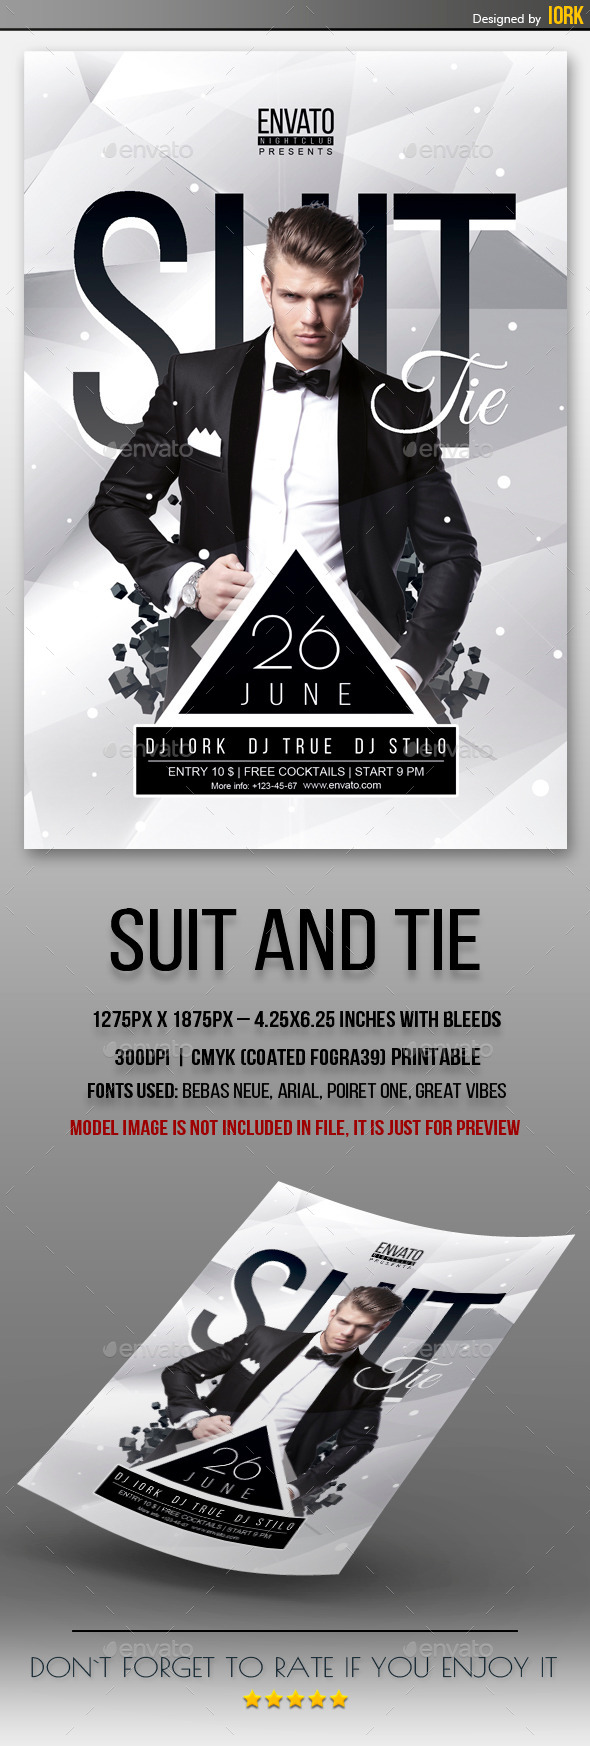 GraphicRiver Suit and Tie Party Flyer 11332512